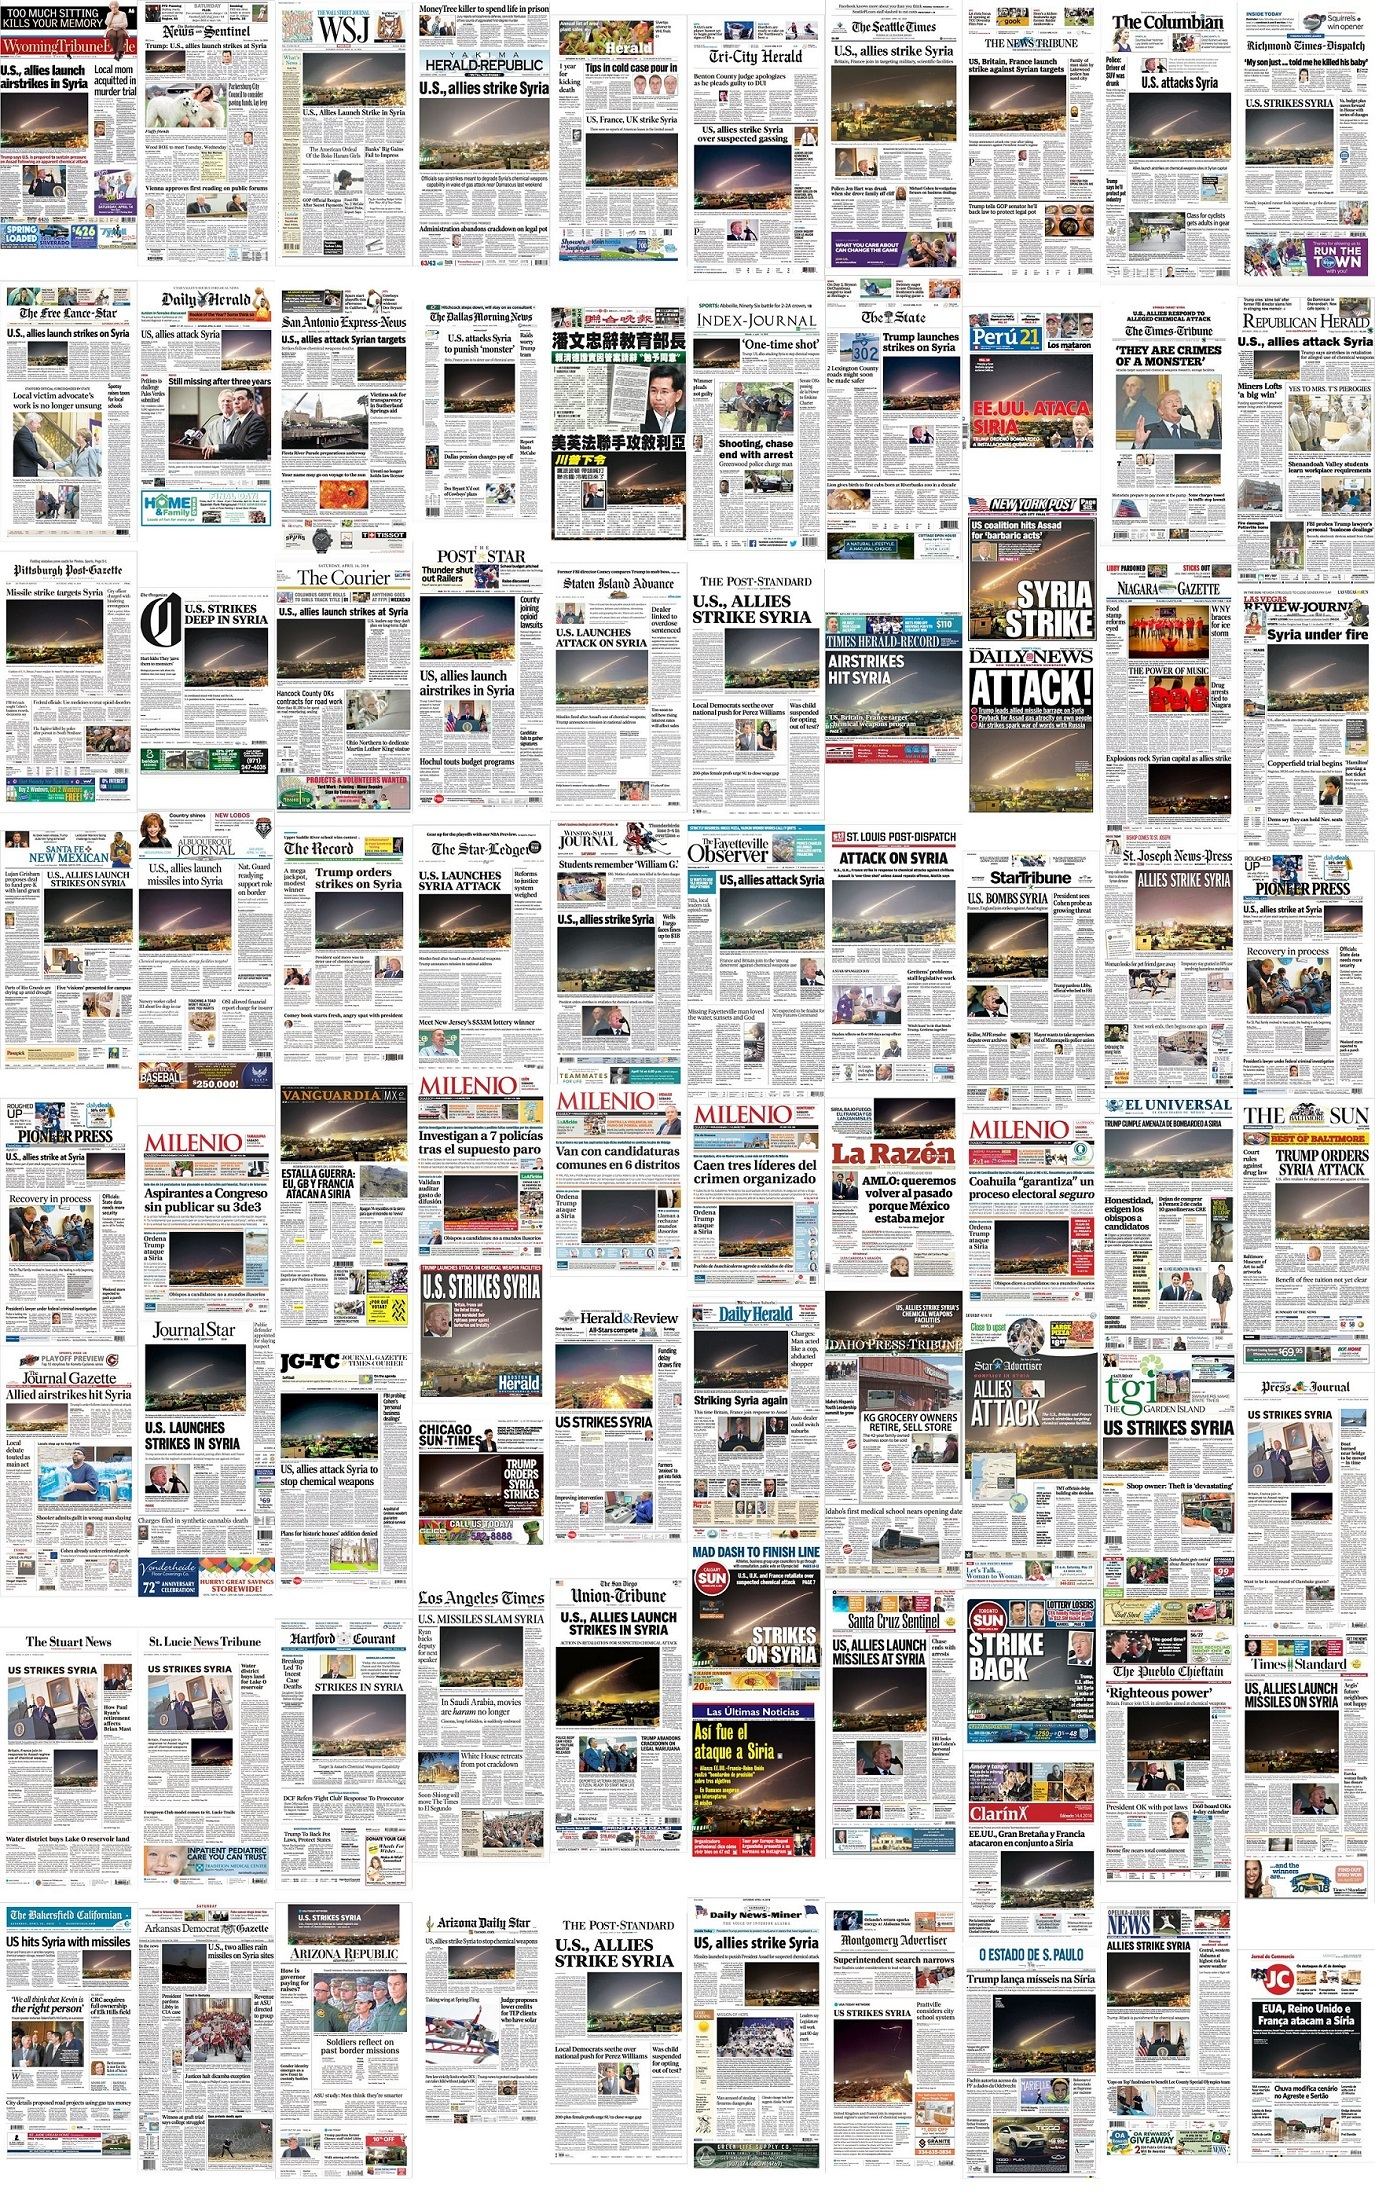 AP Syria missile photos dominate front pages